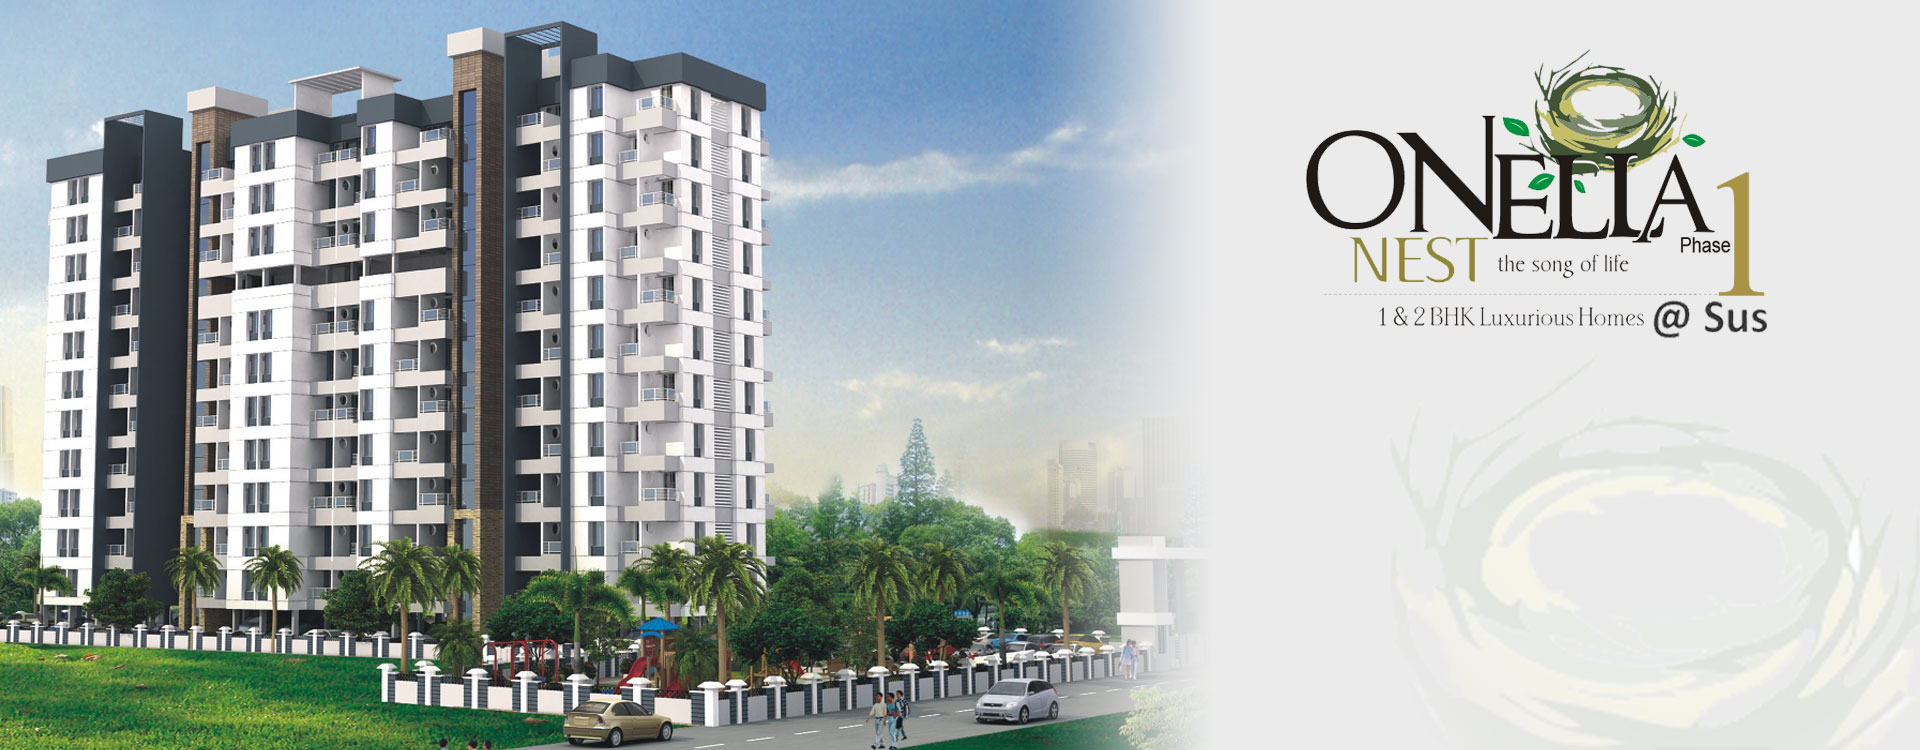 1 & 2 BHk Luxurious Homes @ Sus